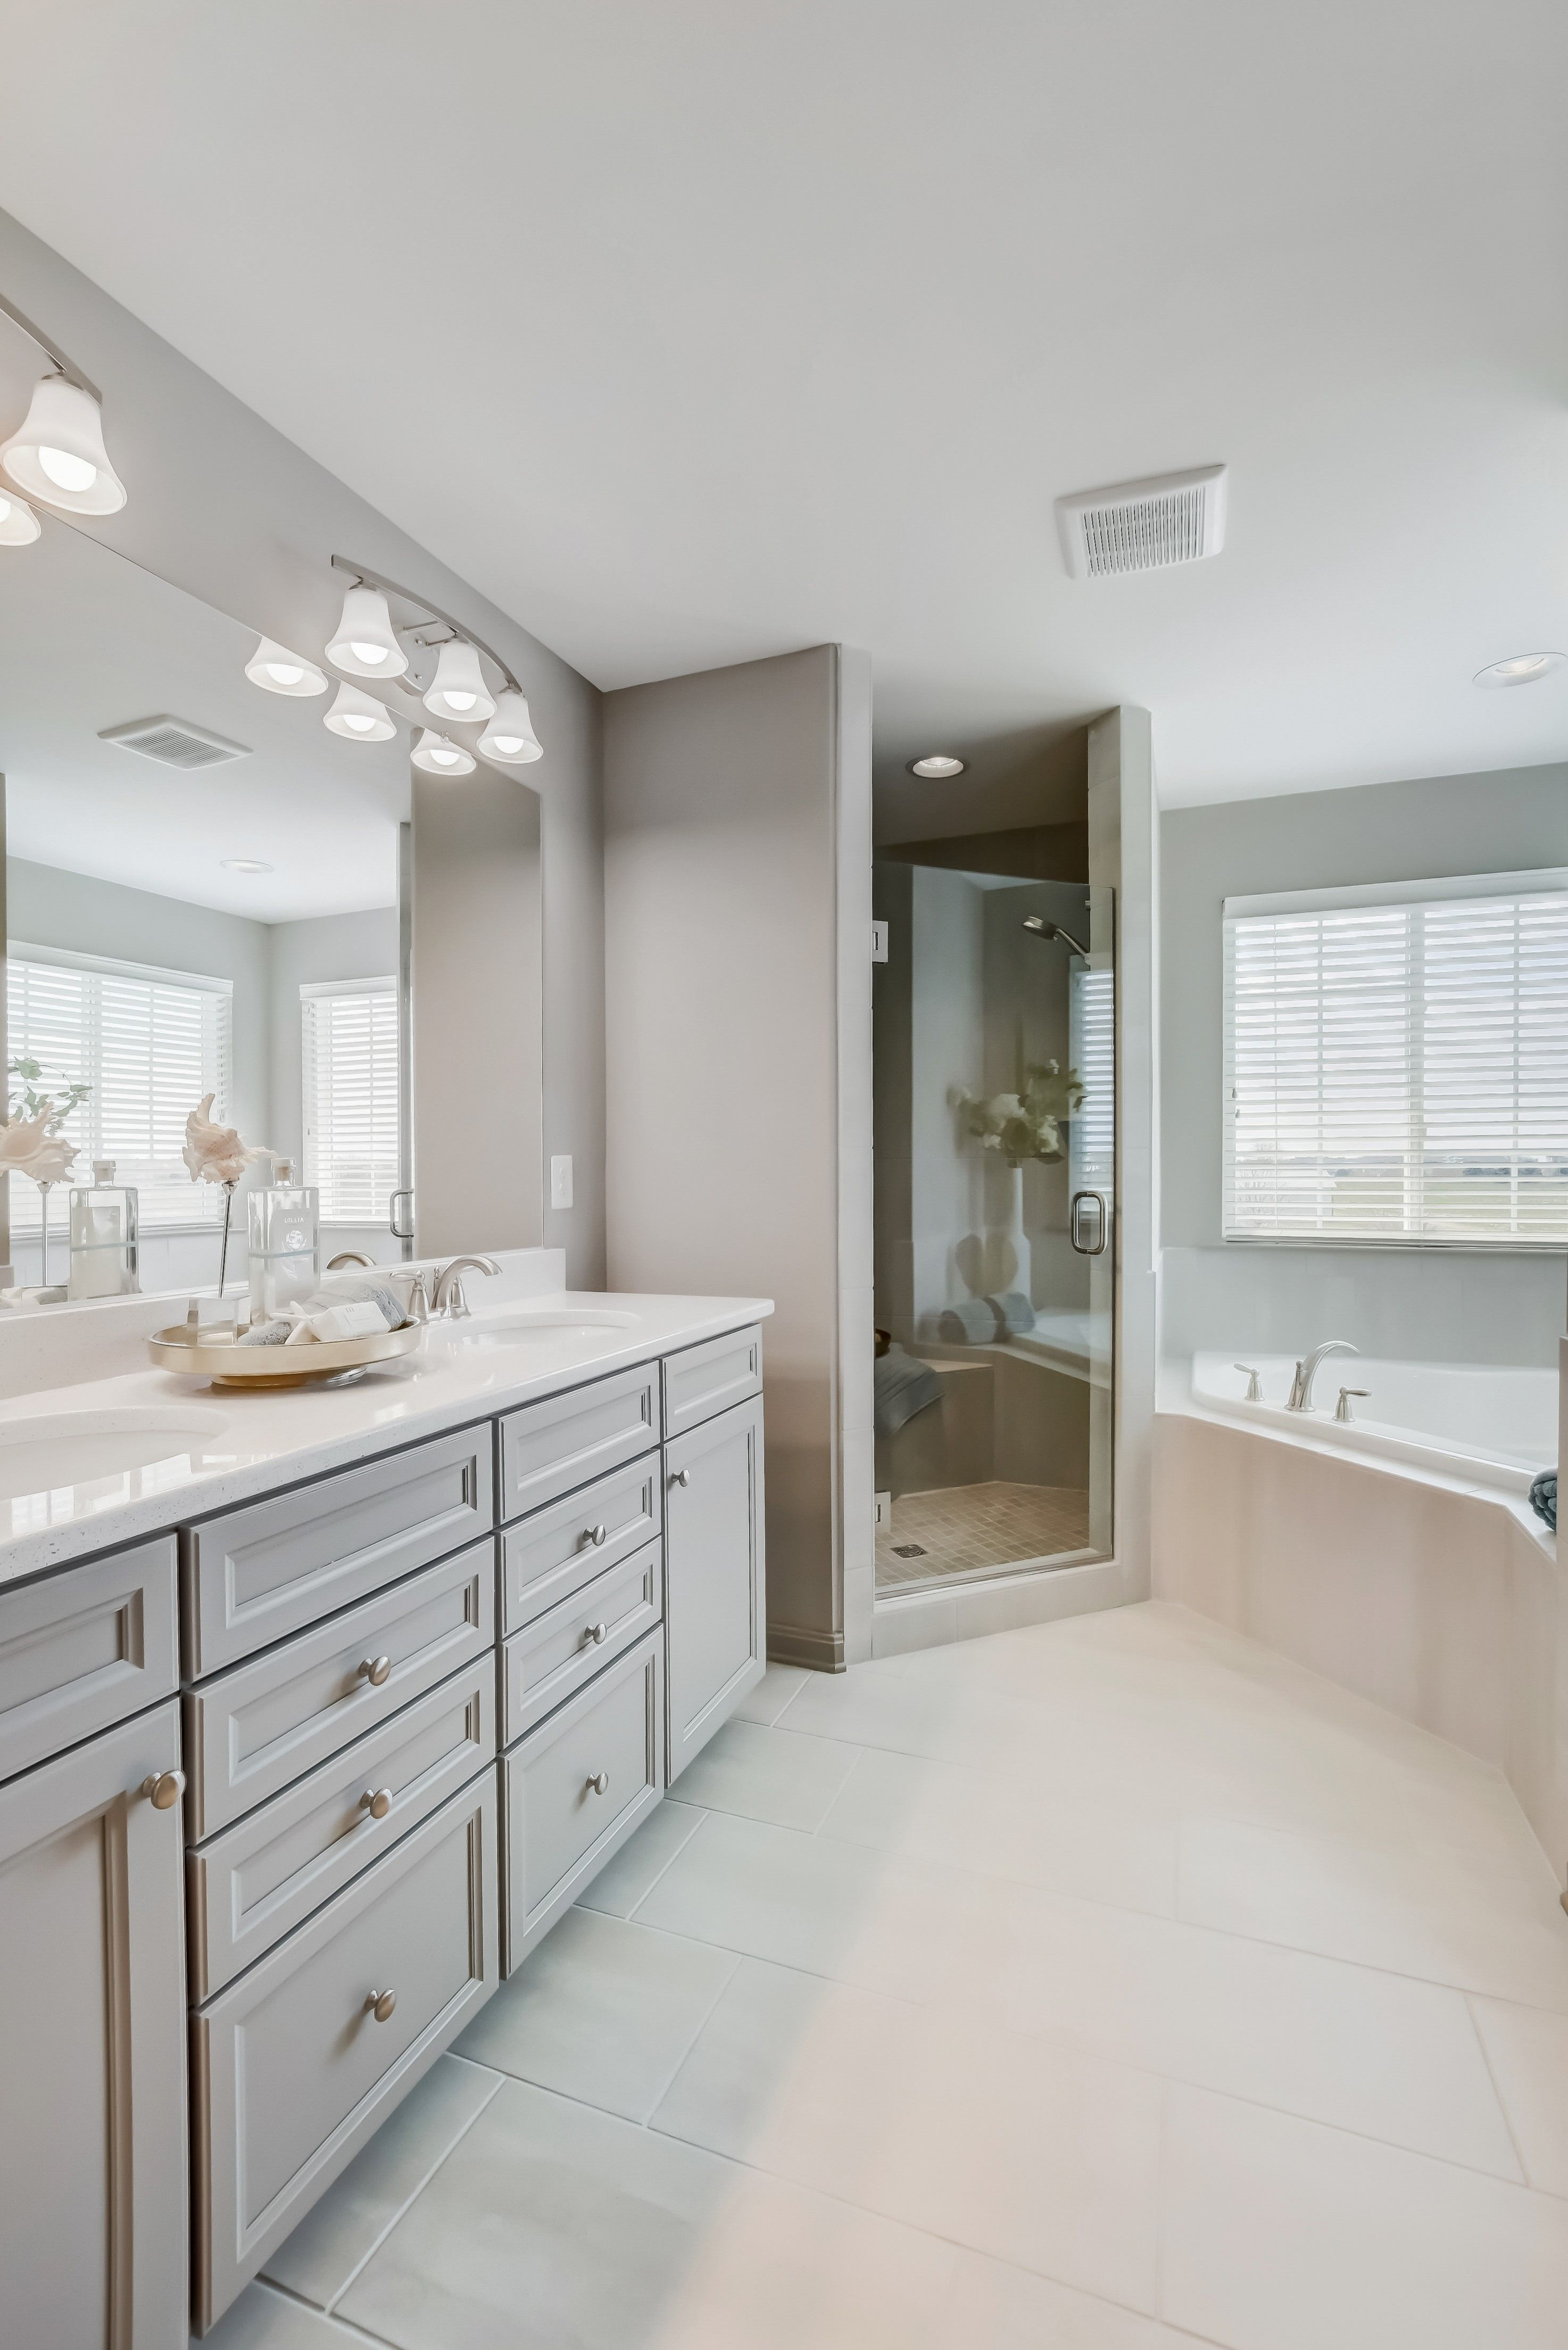 Bathroom featured in the Delaware II By K. Hovnanian® Homes in Washington, VA